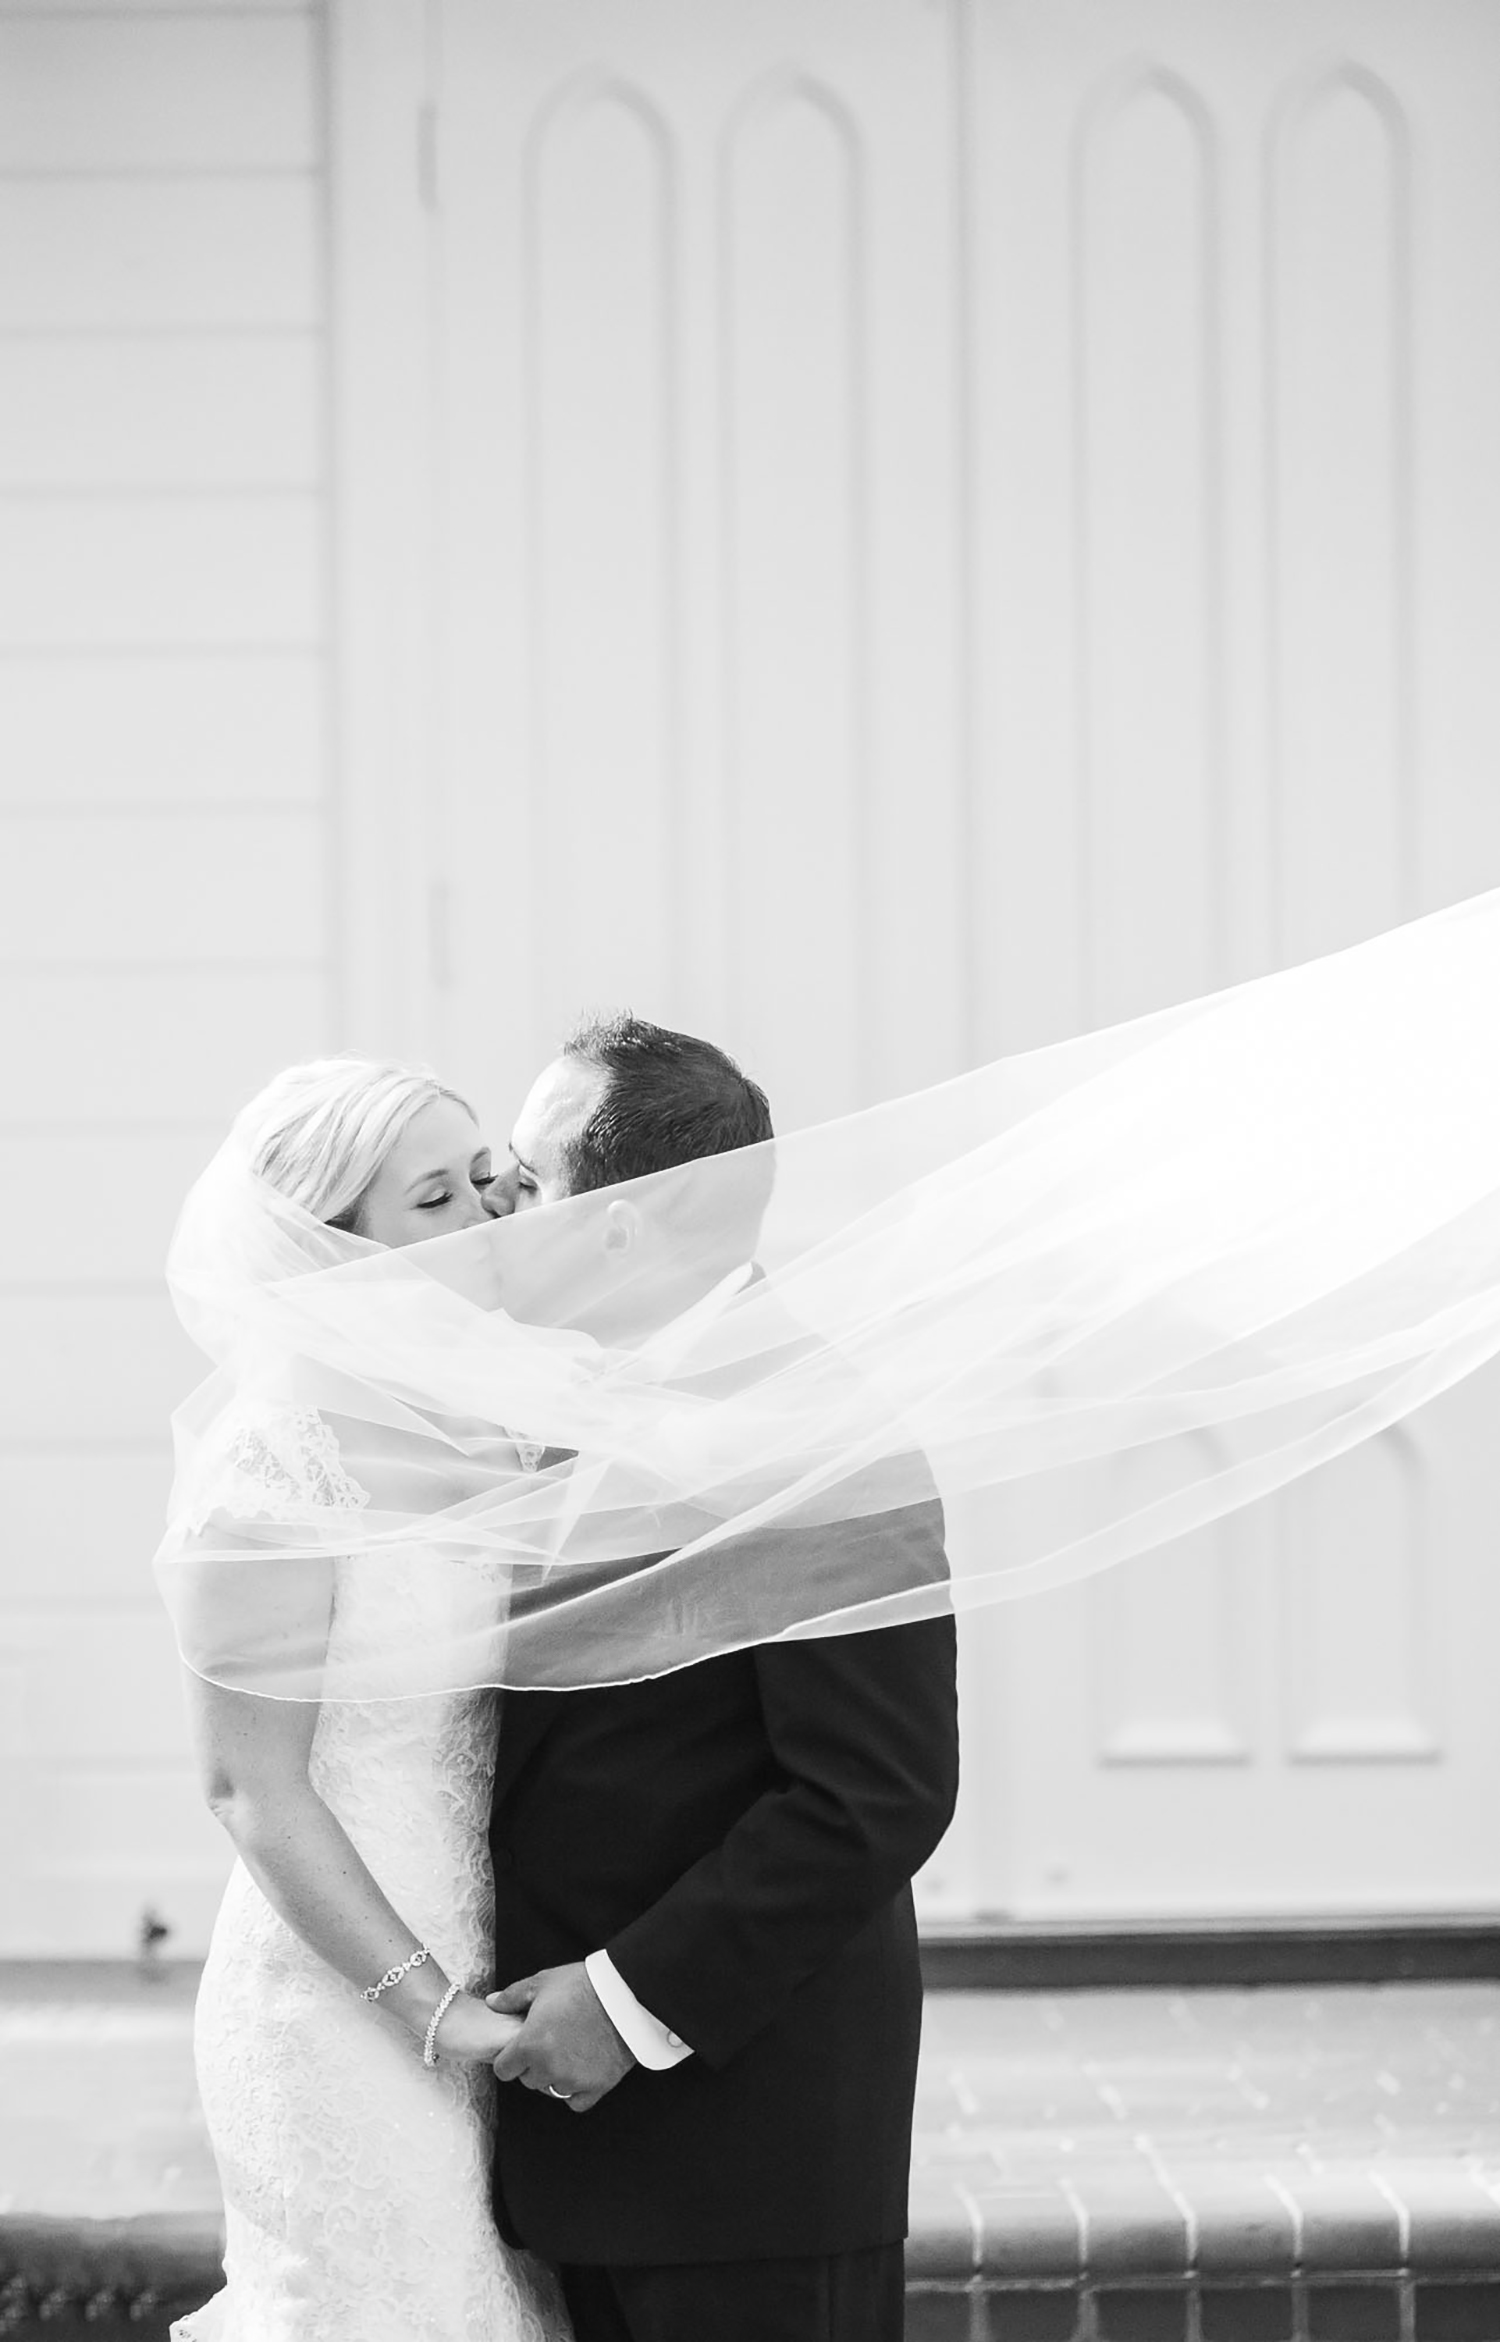 Dena_Rooney_Wedding_Photographer_Chruch_wedding_013.jpg